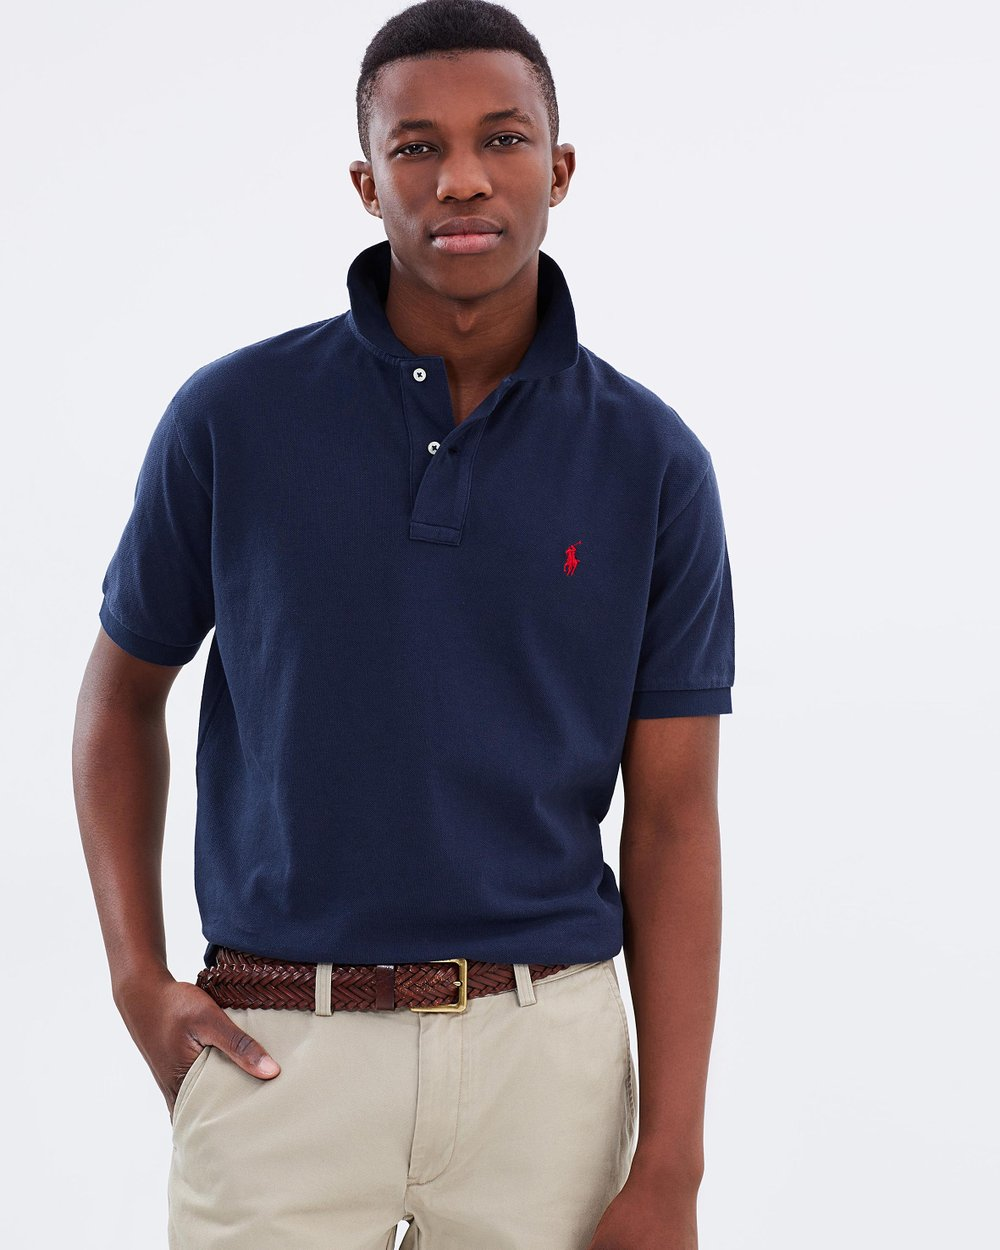 Classic-Fit Mesh Polo Shirt by Polo Ralph Lauren Online   THE ICONIC    Australia 2321bfc70ea6